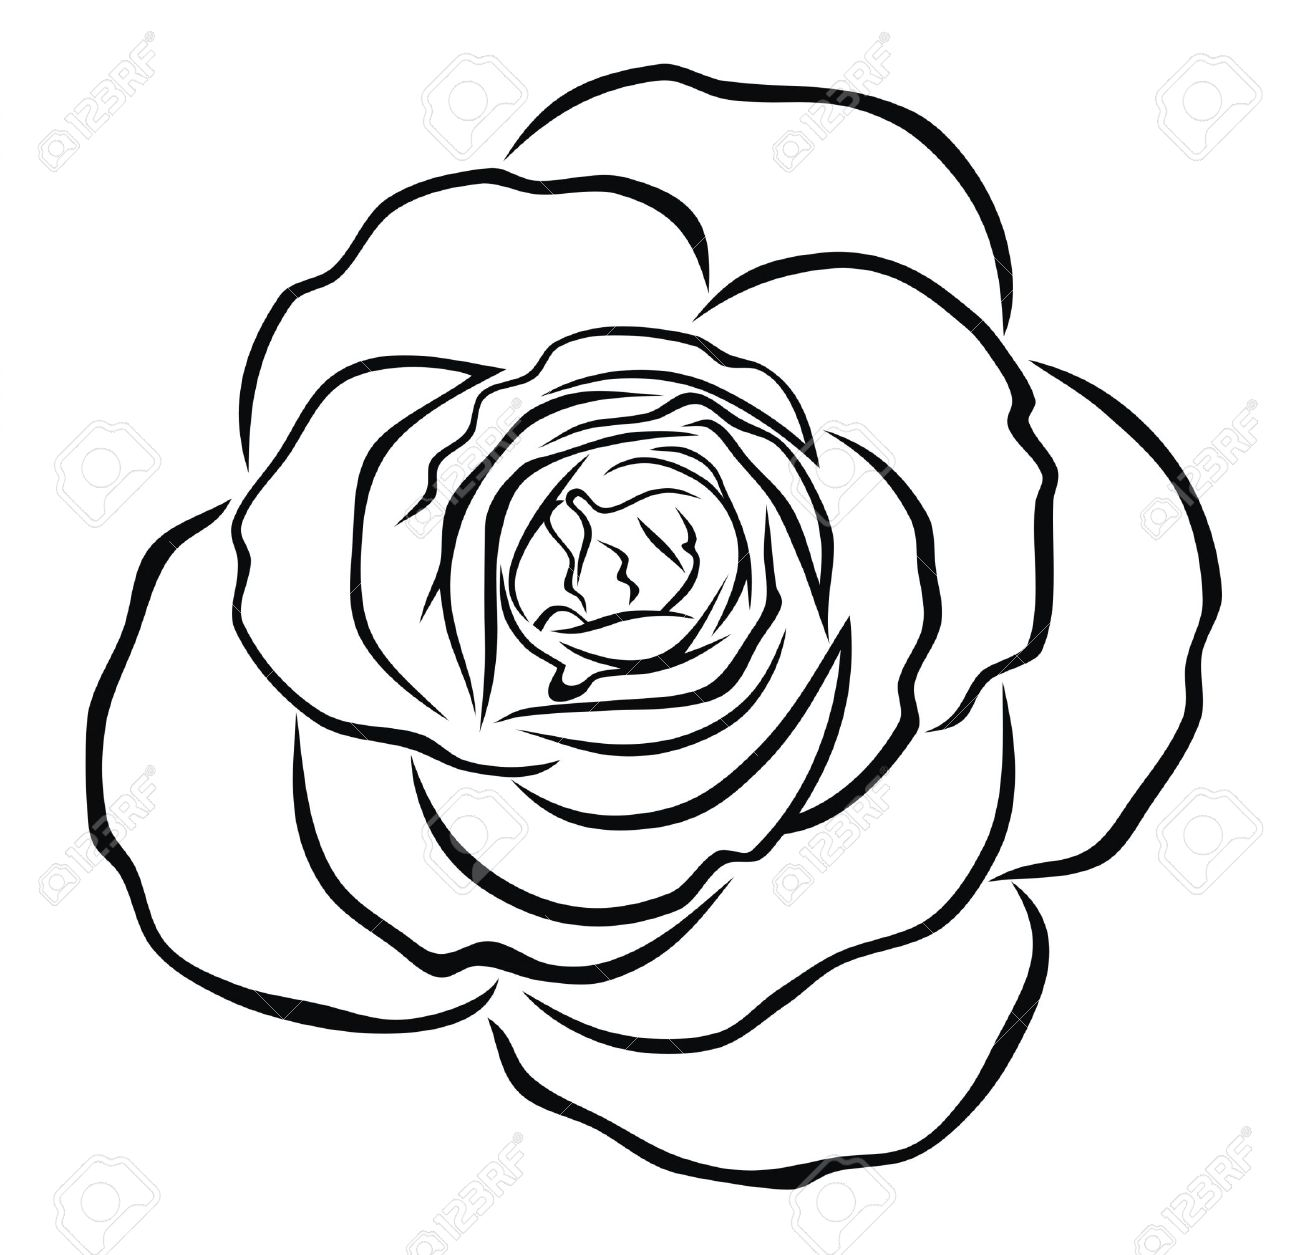 Rose Outline | Free download best Rose Outline on ...